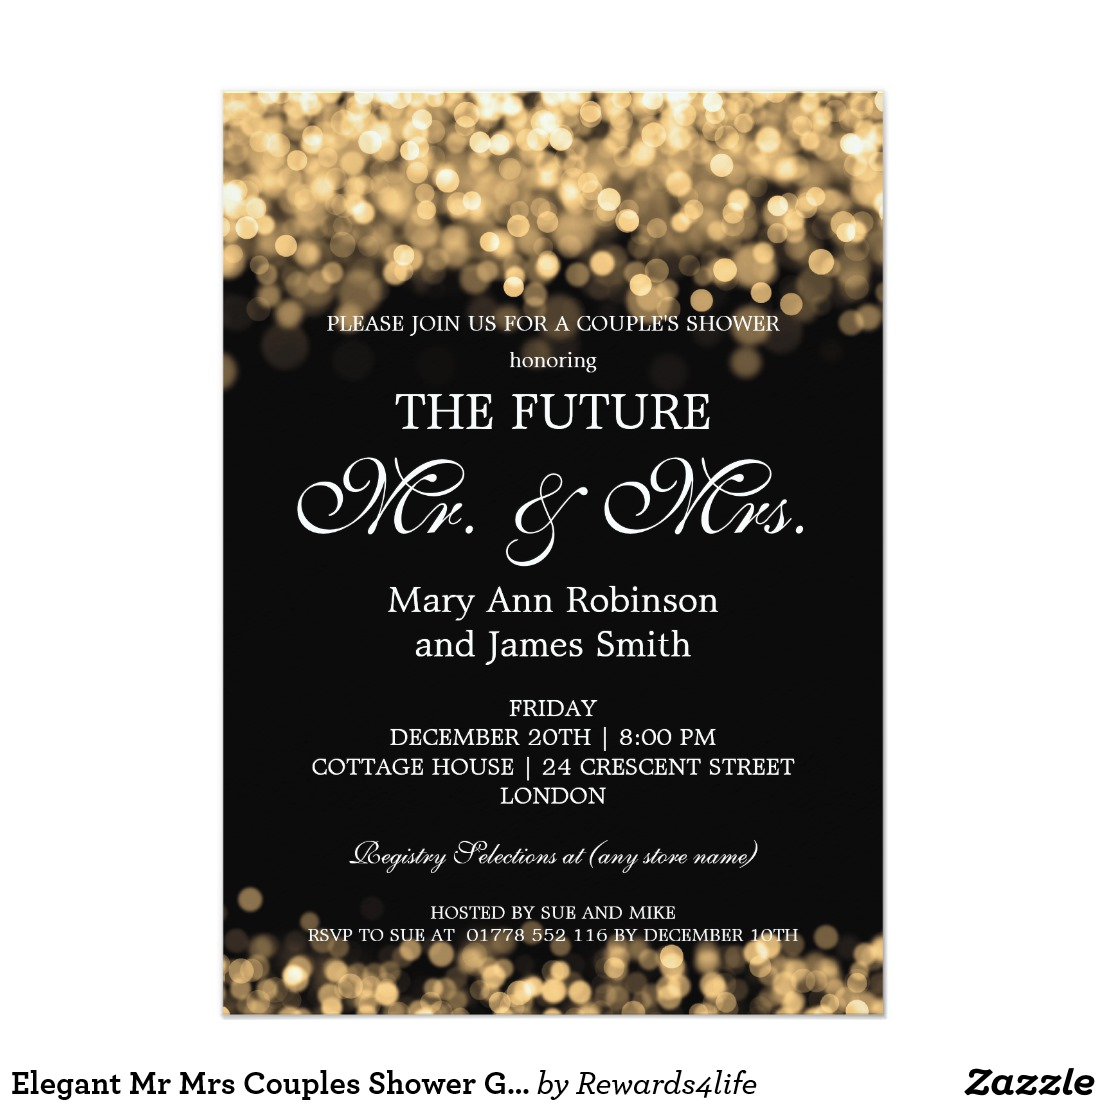 Mr & Mrs Couples Shower Invitations